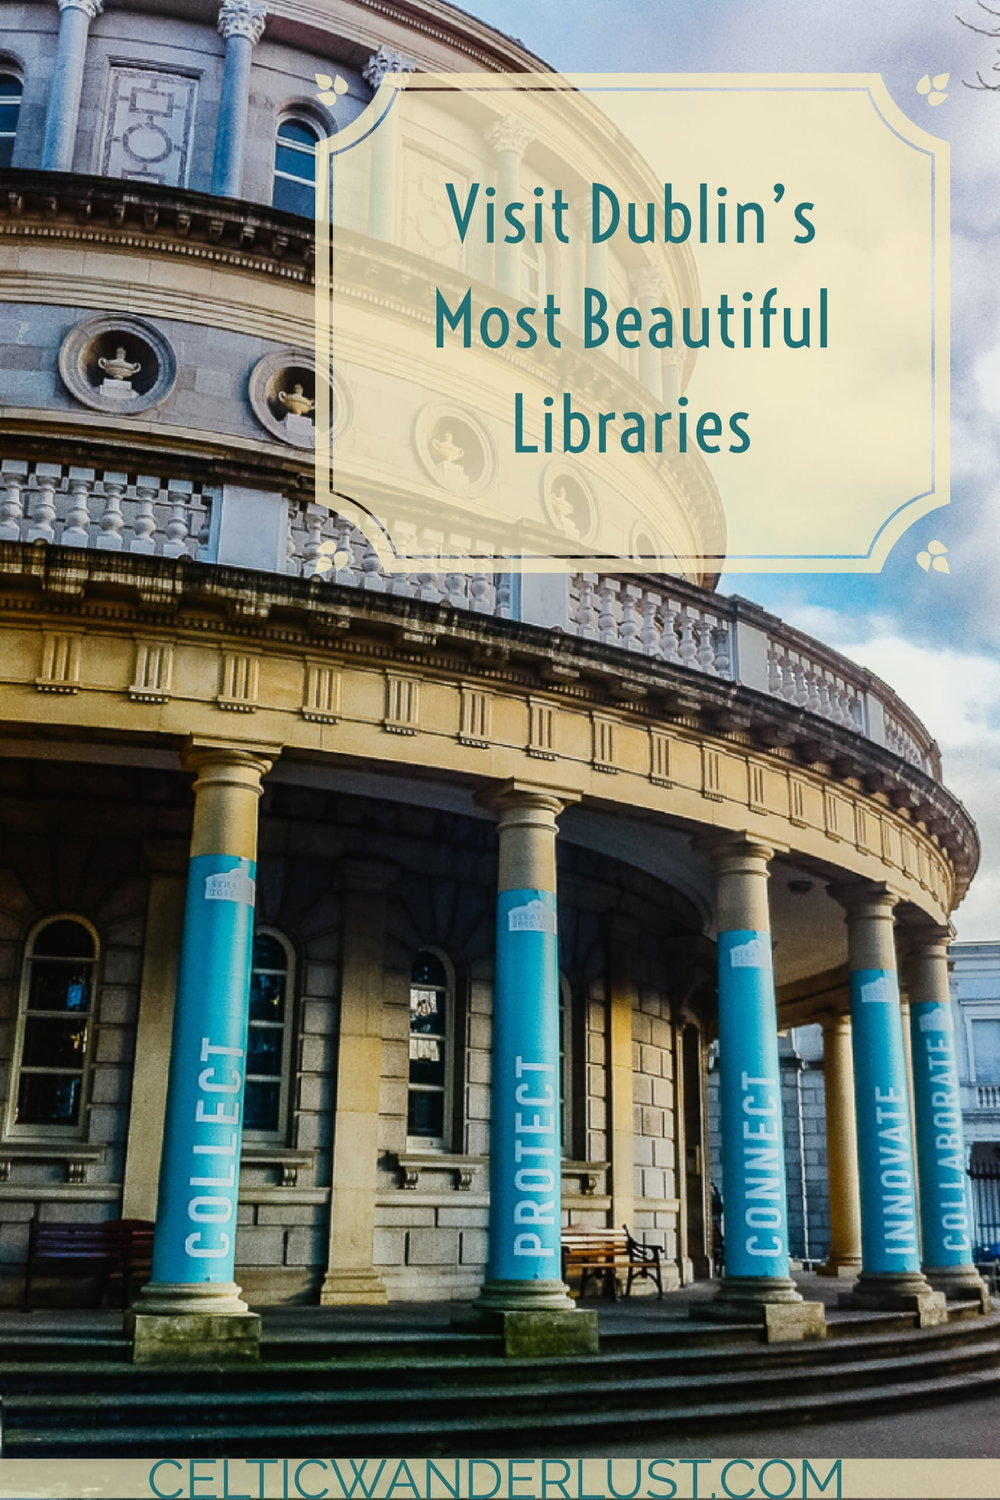 Visit Dublin's Most Beautiful Libraries